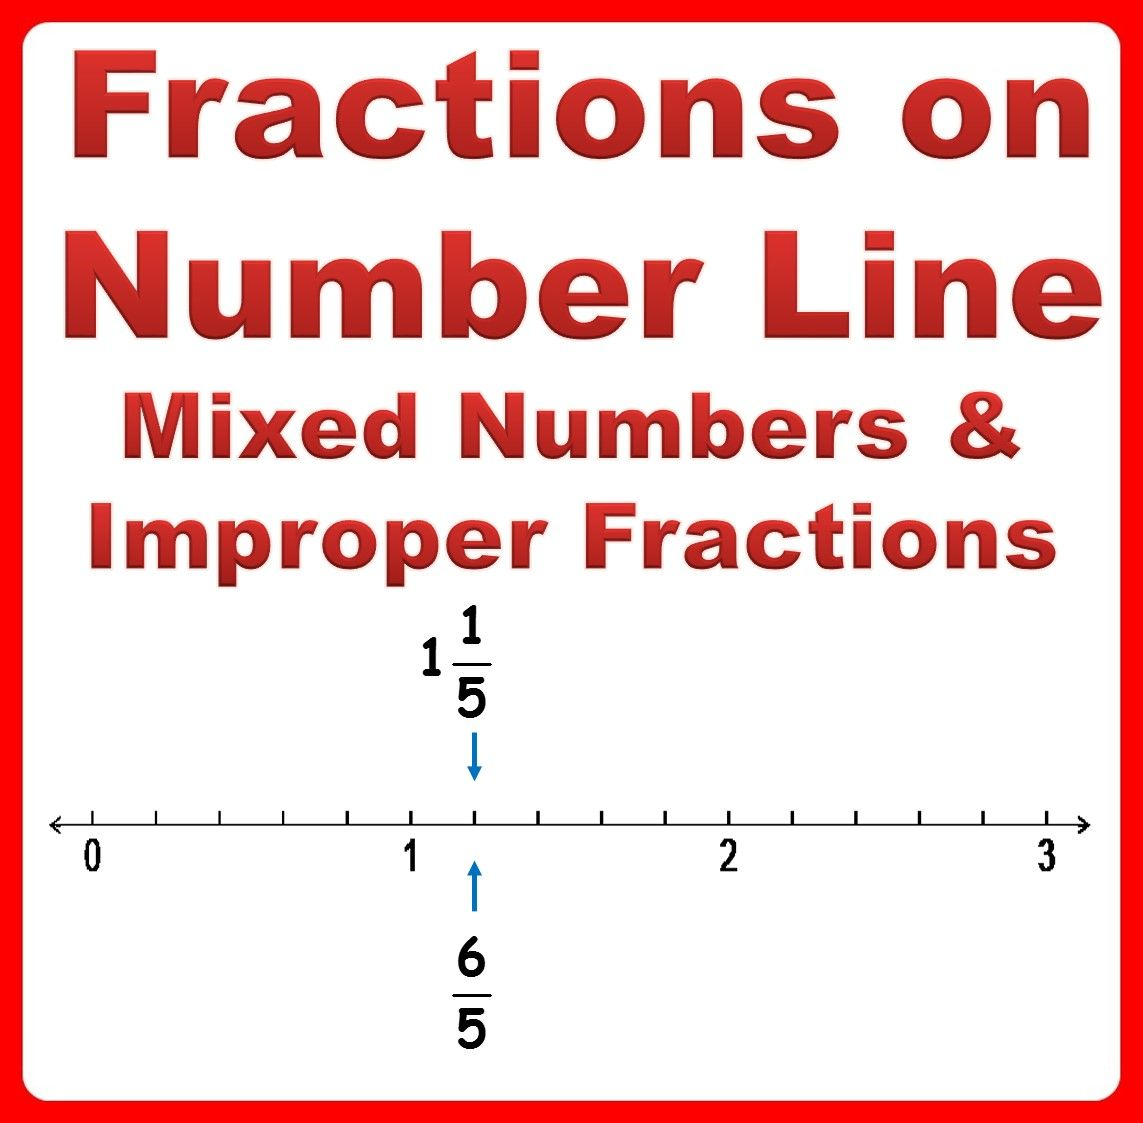 worksheet Visual Fractions more than 40 exercises for practice using number line as visual fractions on mixed numbers and improper fractions